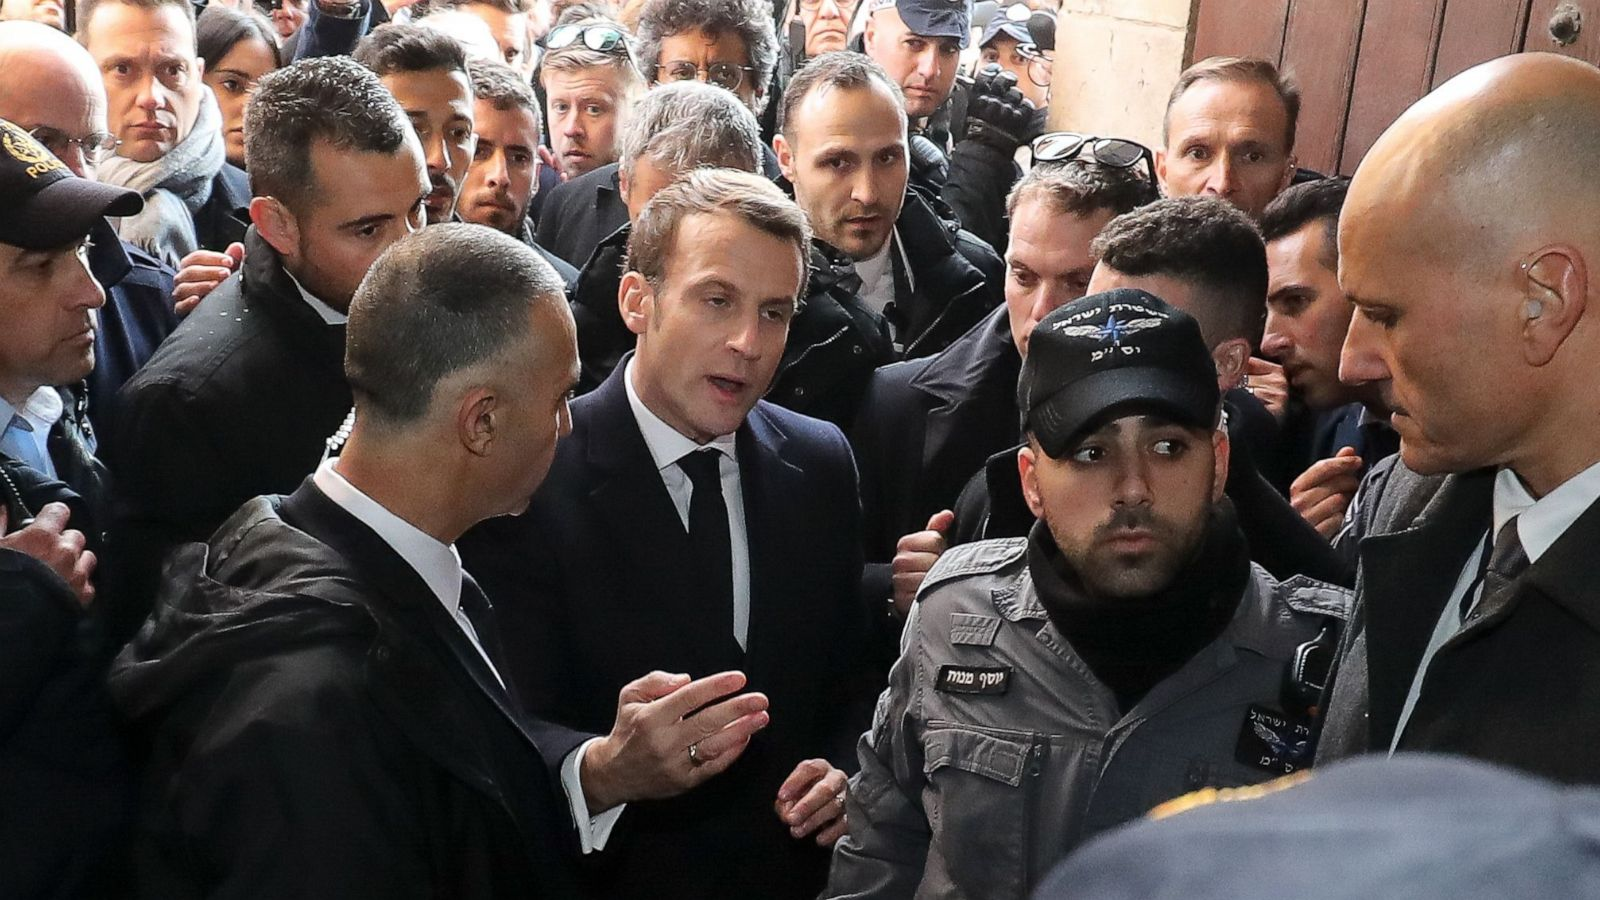 French President Emmanuel Macron Loses His Cool In Argument With Israeli Guards In Jerusalem Abc News